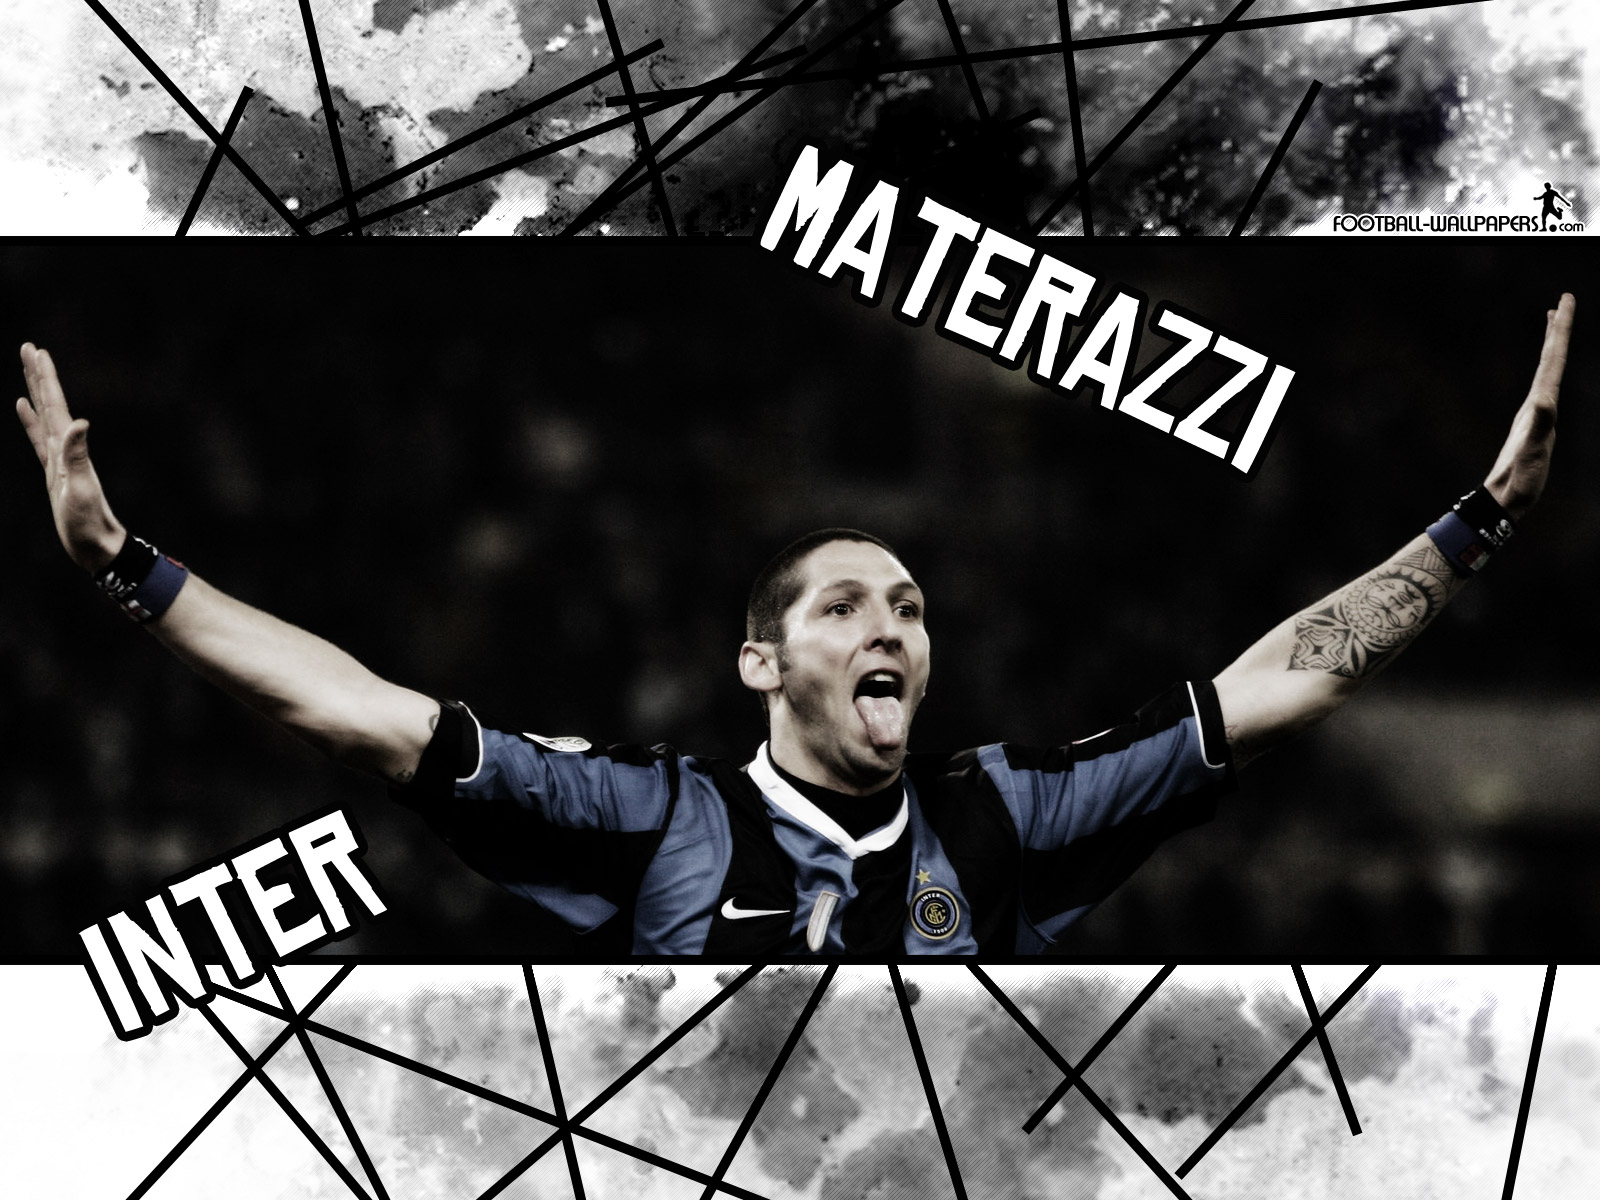 inter milan wallpaper 2012 - photo #28